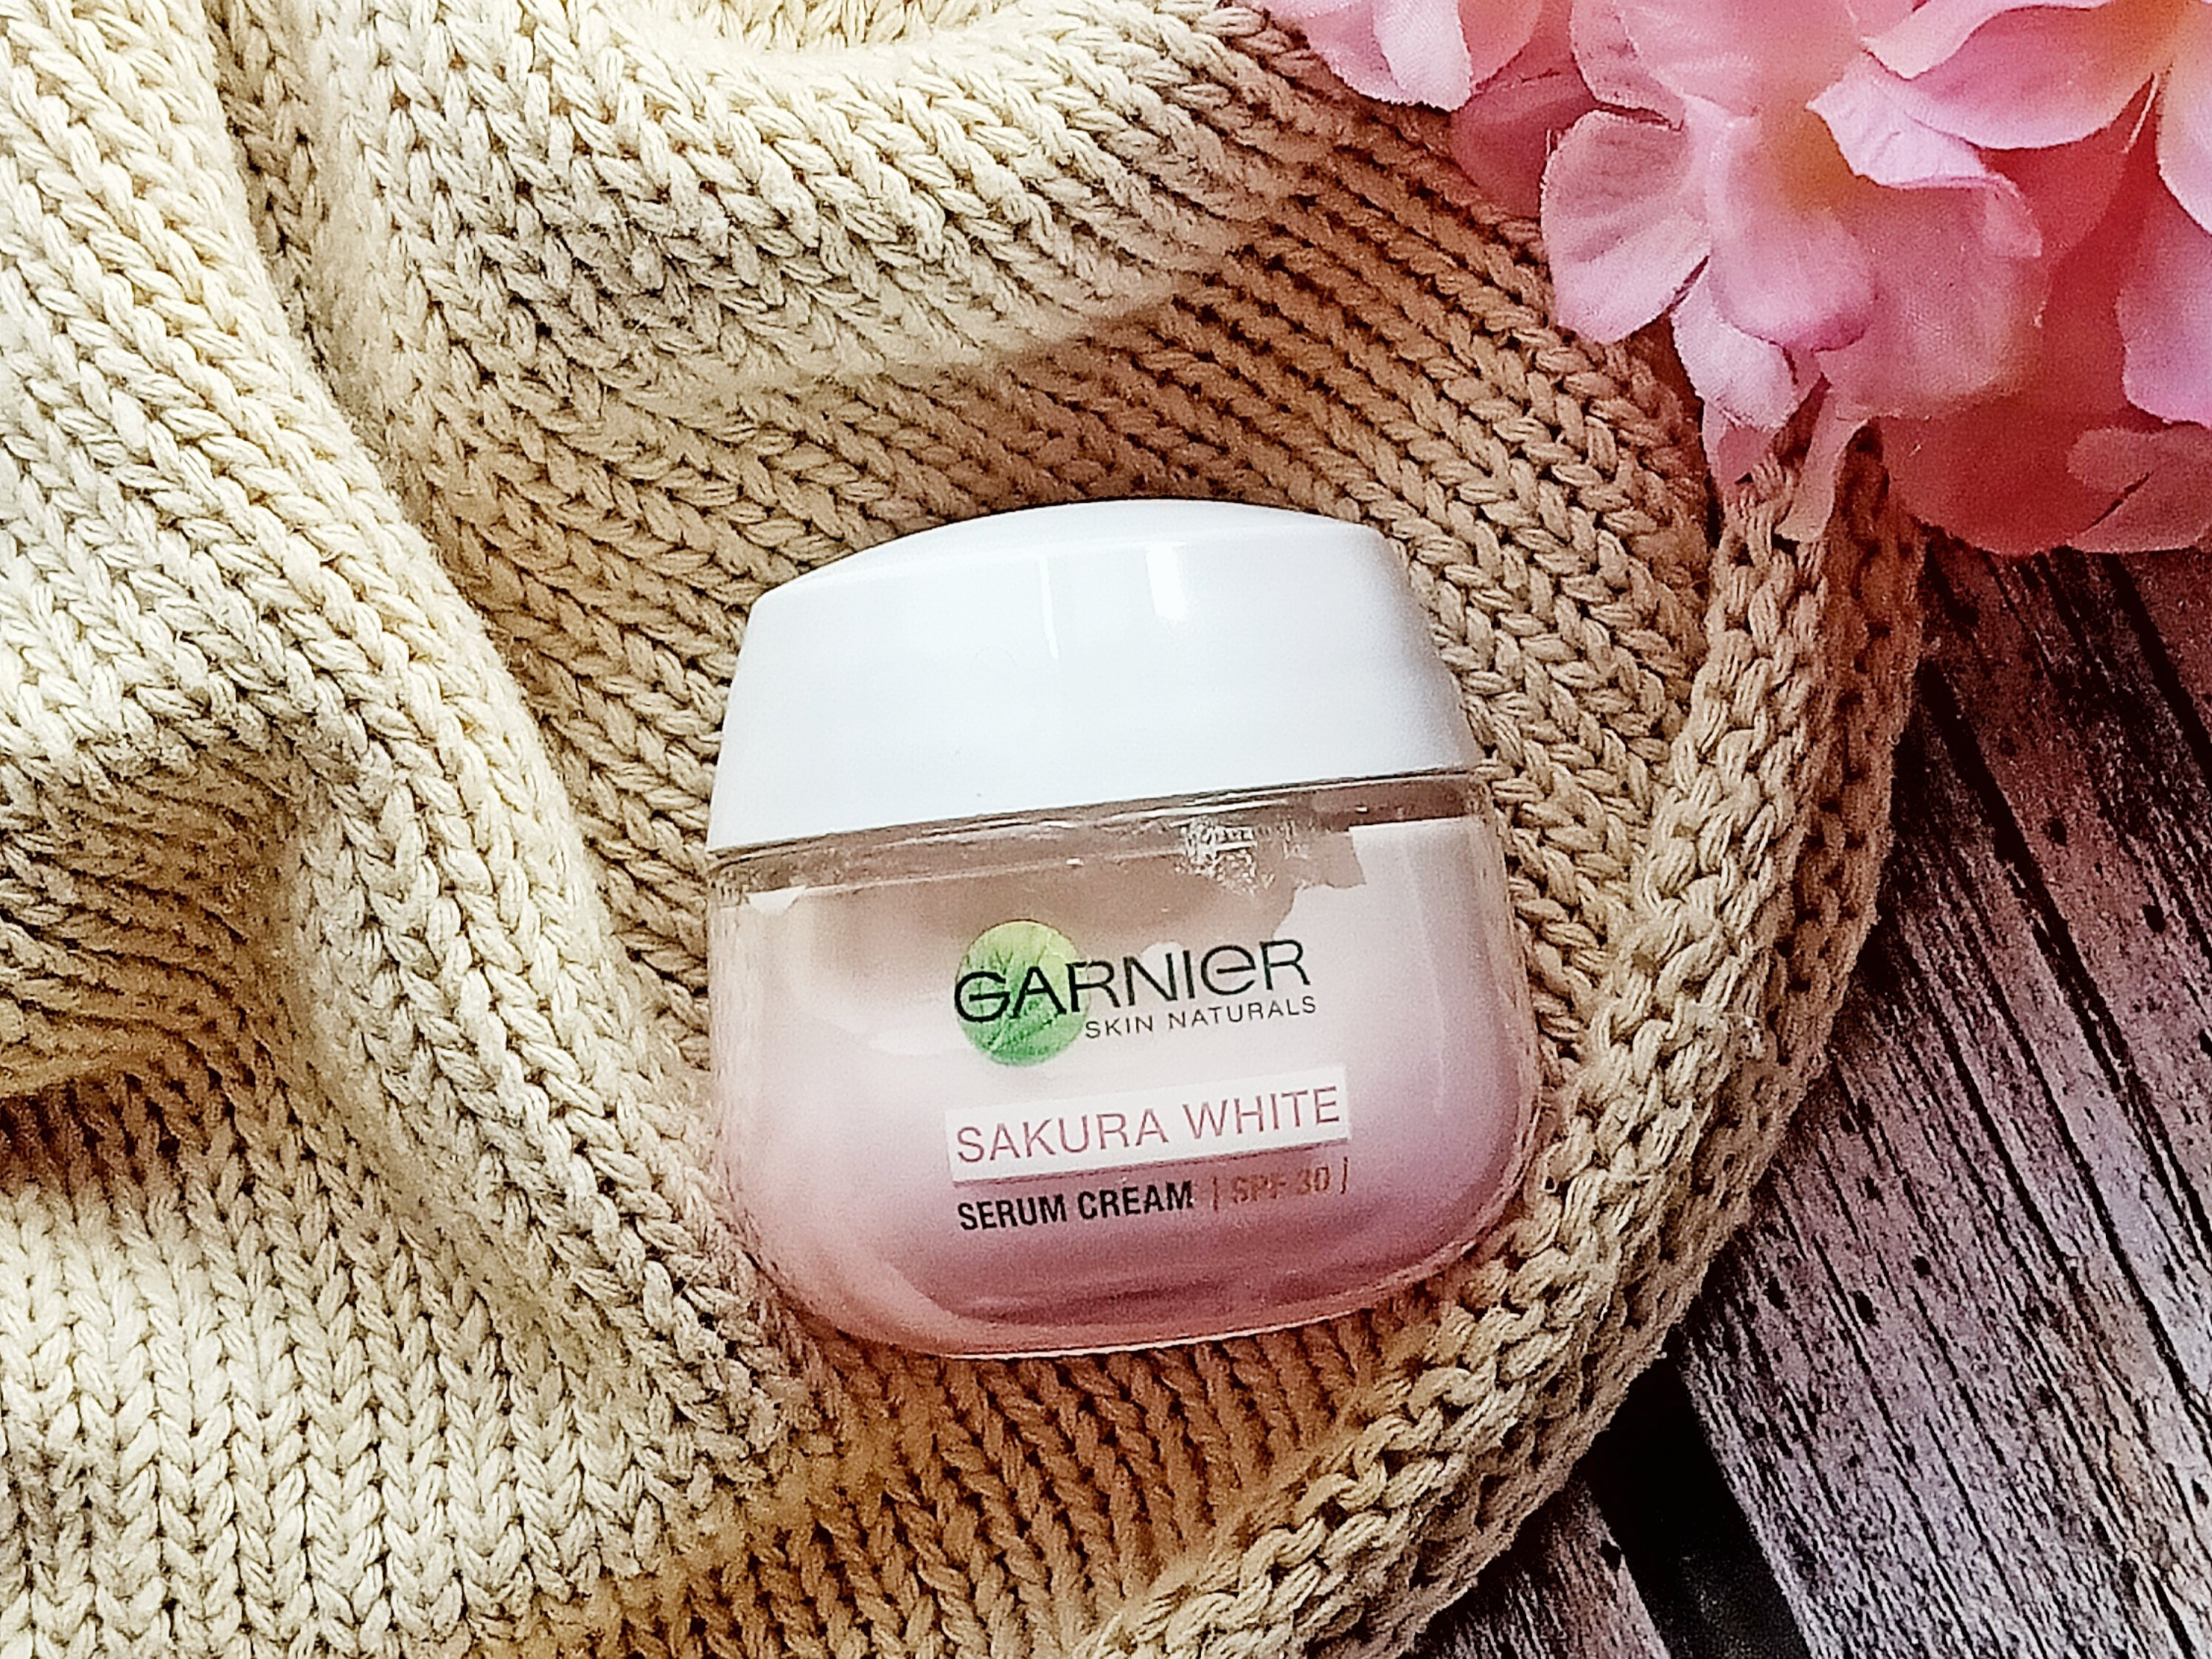 REVIEW | Instant Glowing Skin with Garnier Sakura White Whitening Serum Cream SPF21